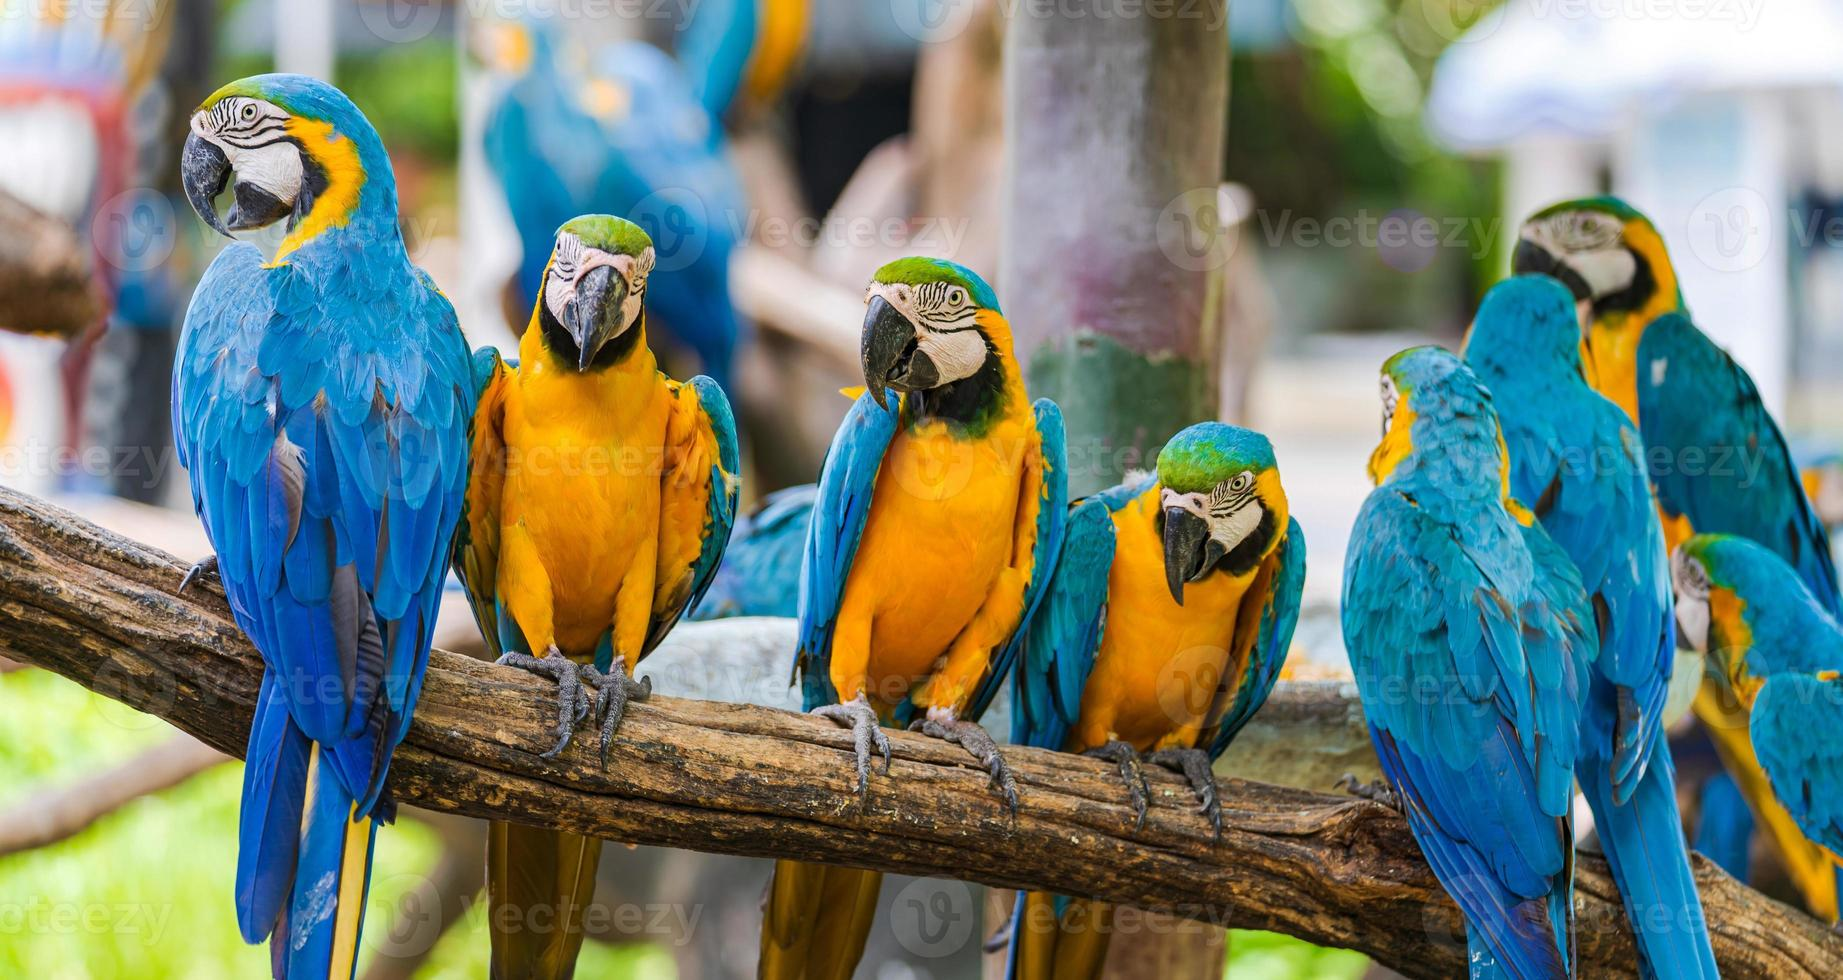 Macaw parrots on tree branches photo